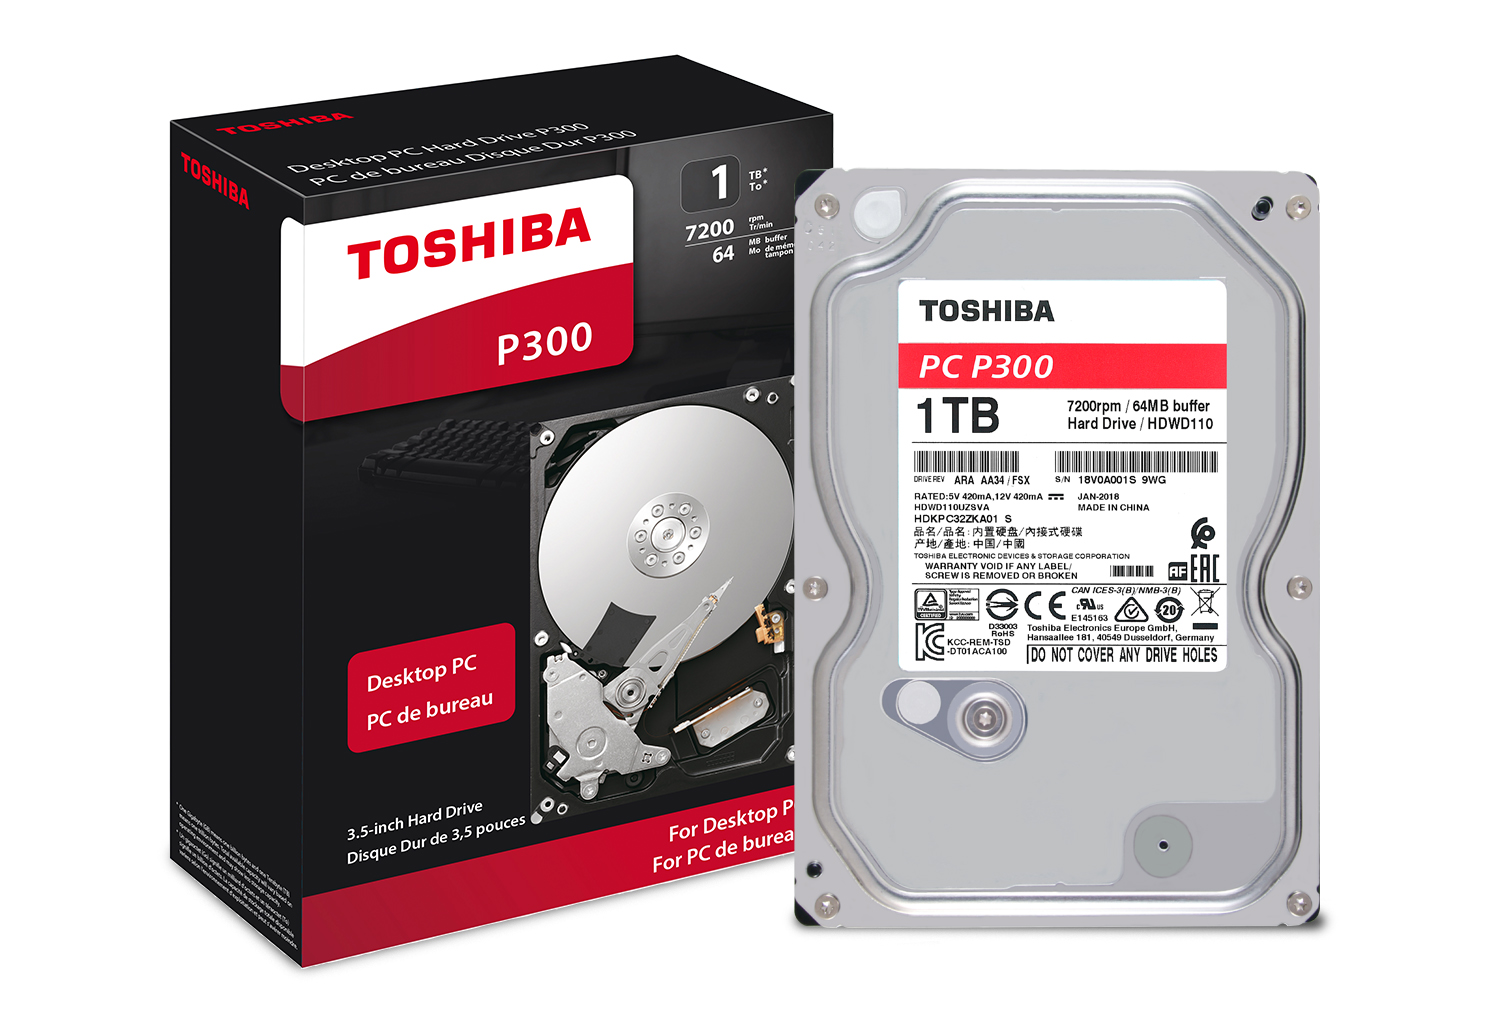 Toshiba P300 1tb Desktop Pc Internal Hard Drive 7200 Rpm Sata 6gb S 1600 Xp Wiring Diagram Media